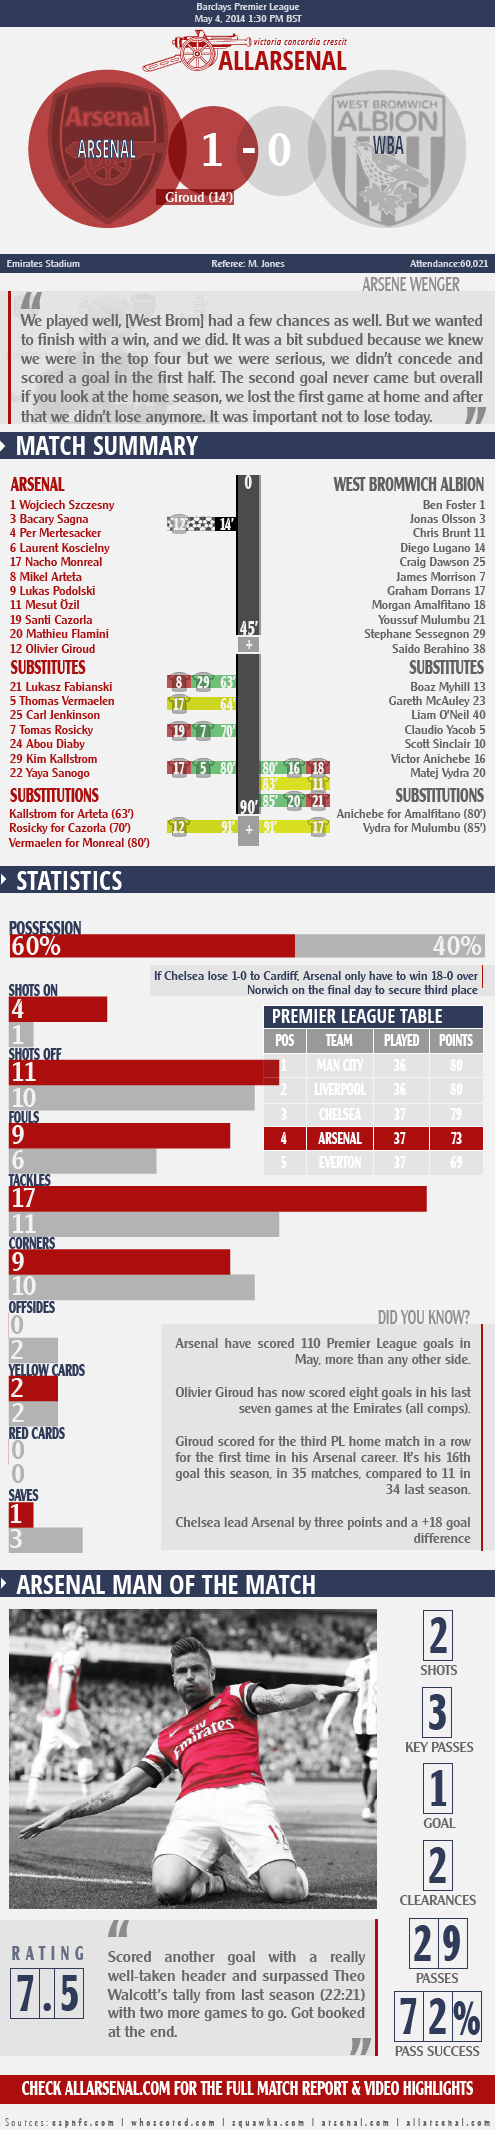 arsenal1-0westbrom match report infographic-01